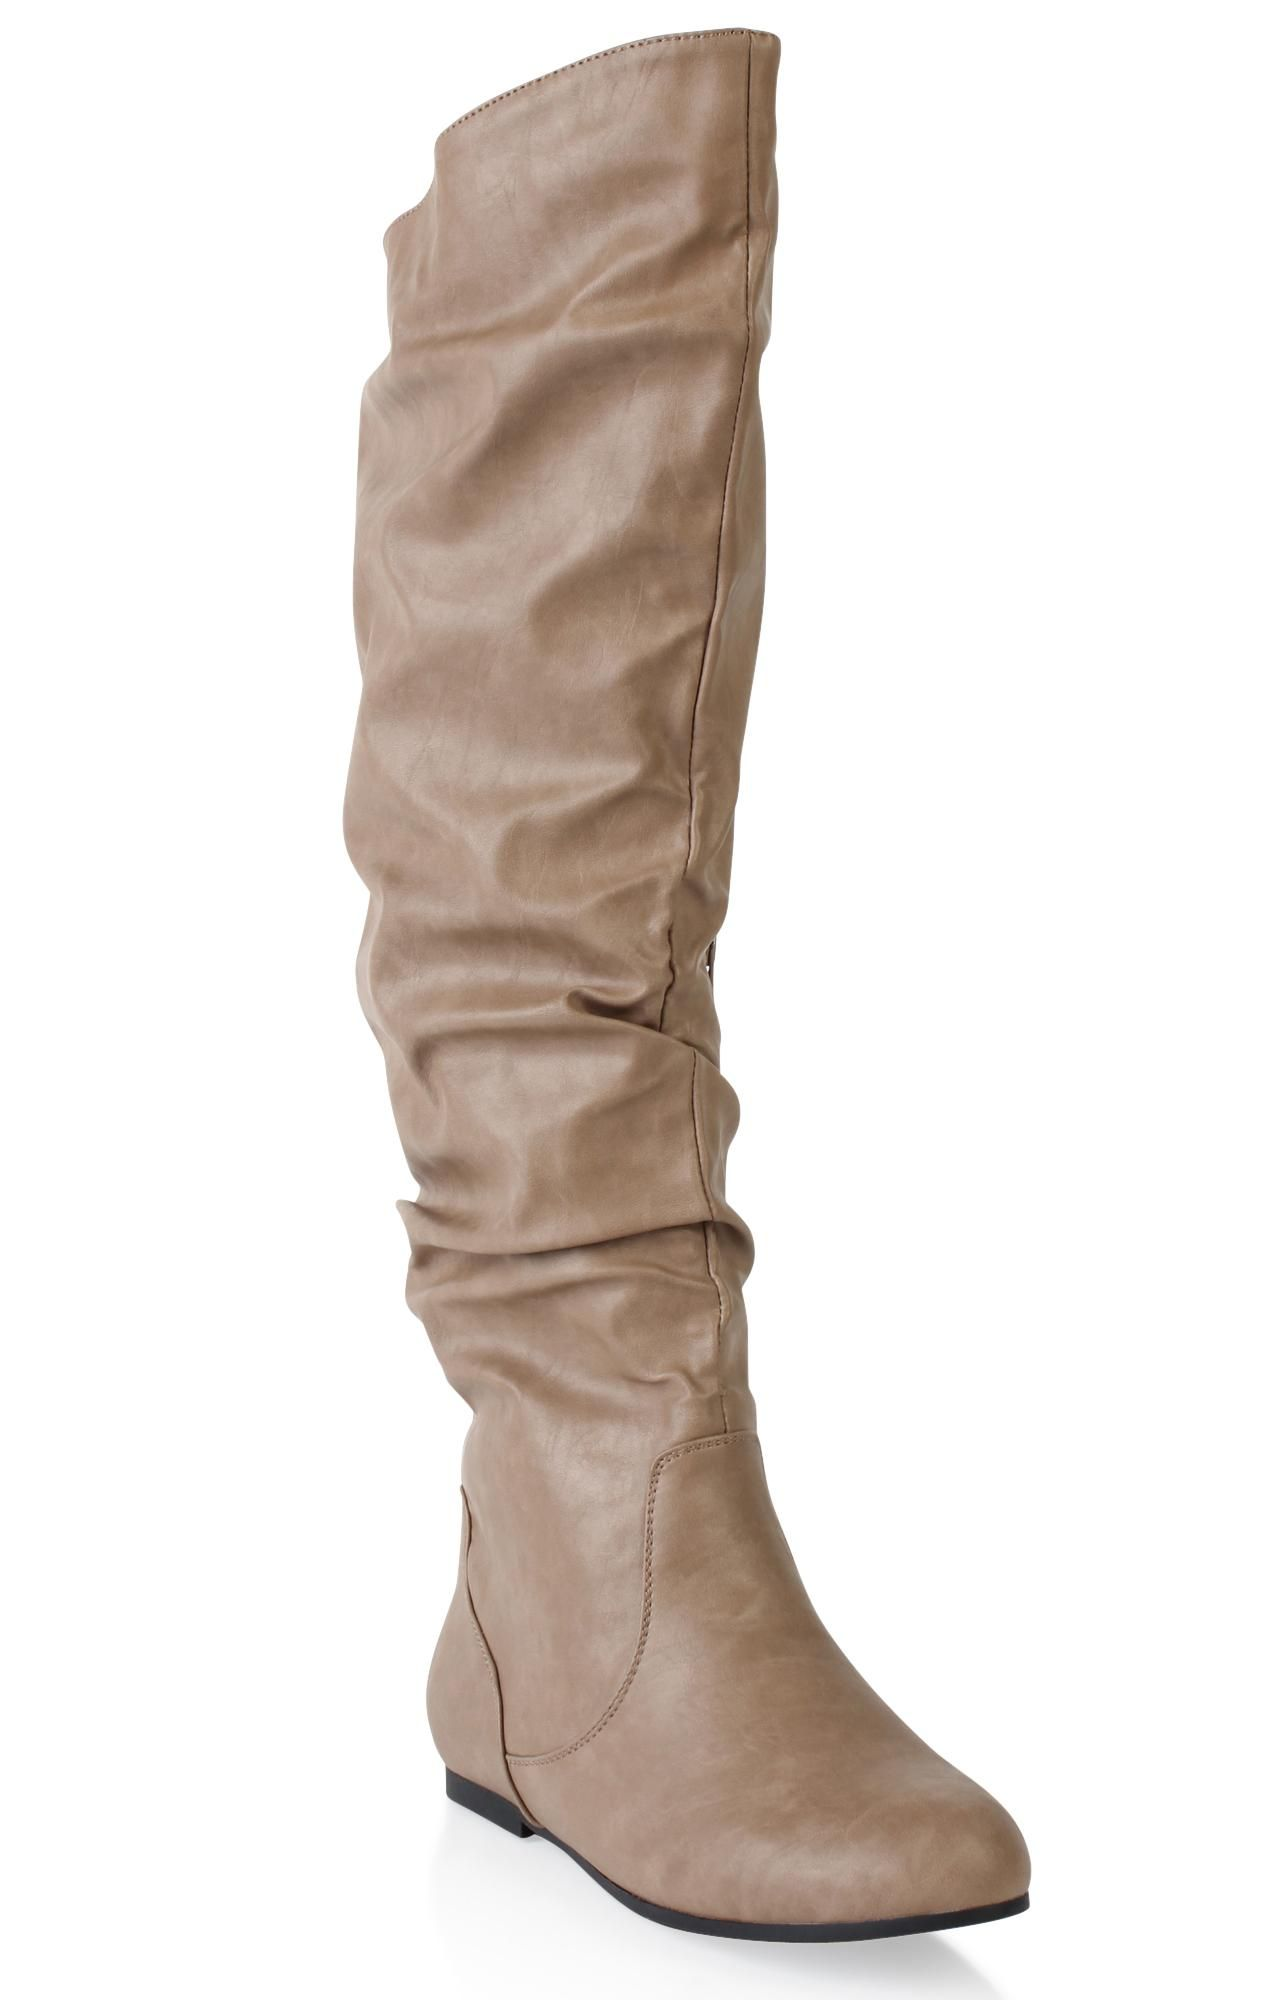 wide width boot with round toe and wide calf